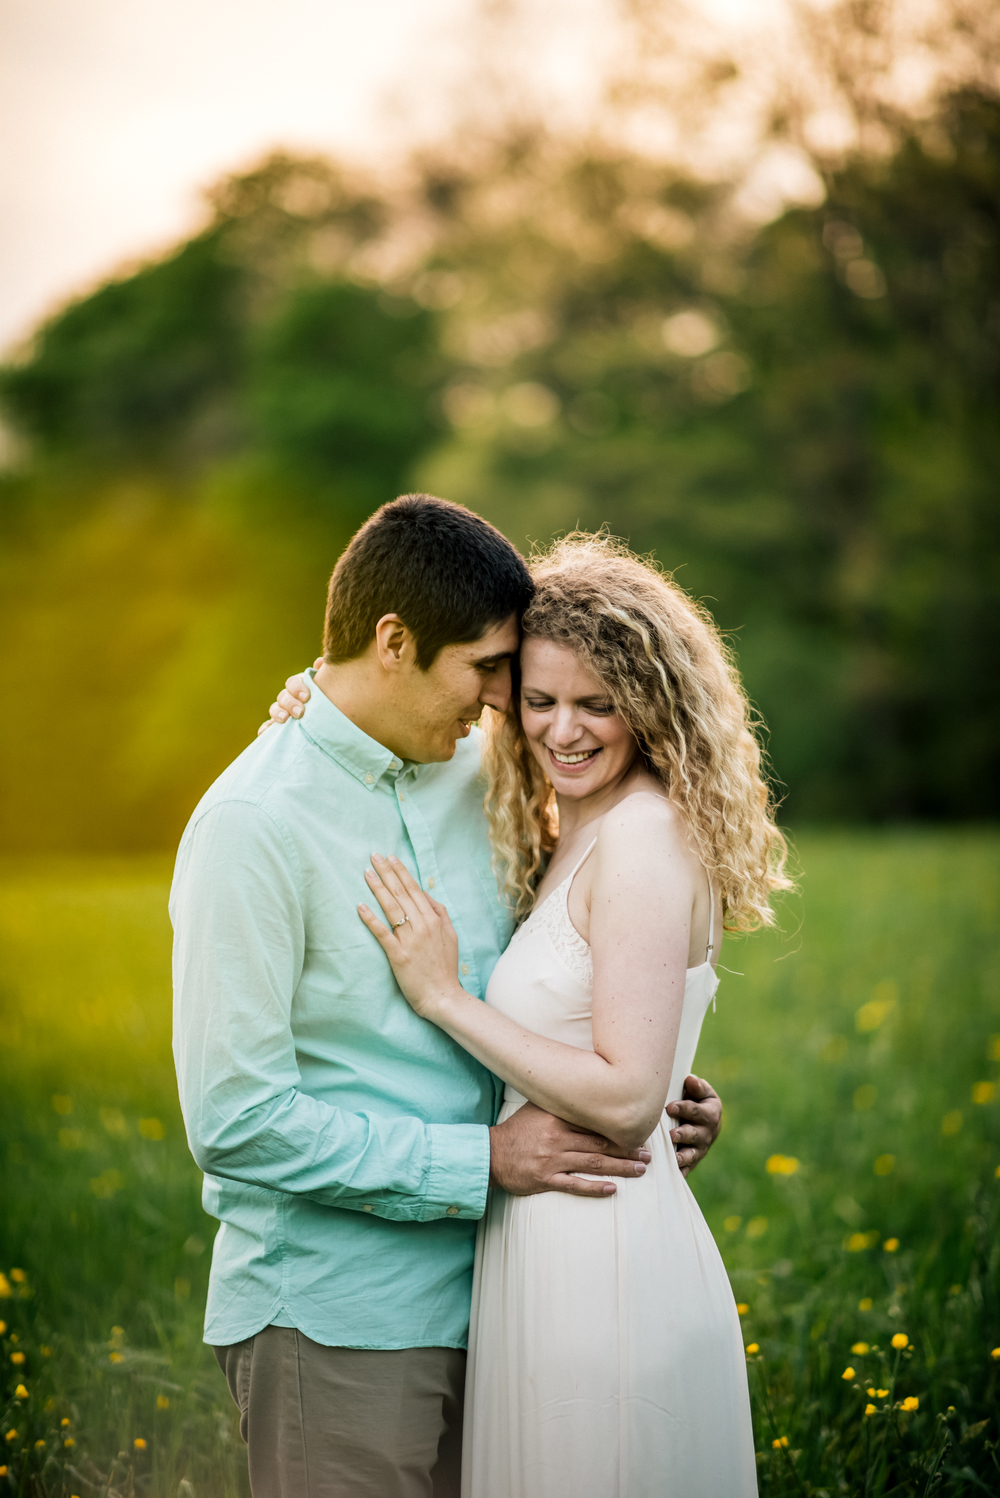 Enagement session in huntsburg ohio gaelle and juan nick plus danee photography